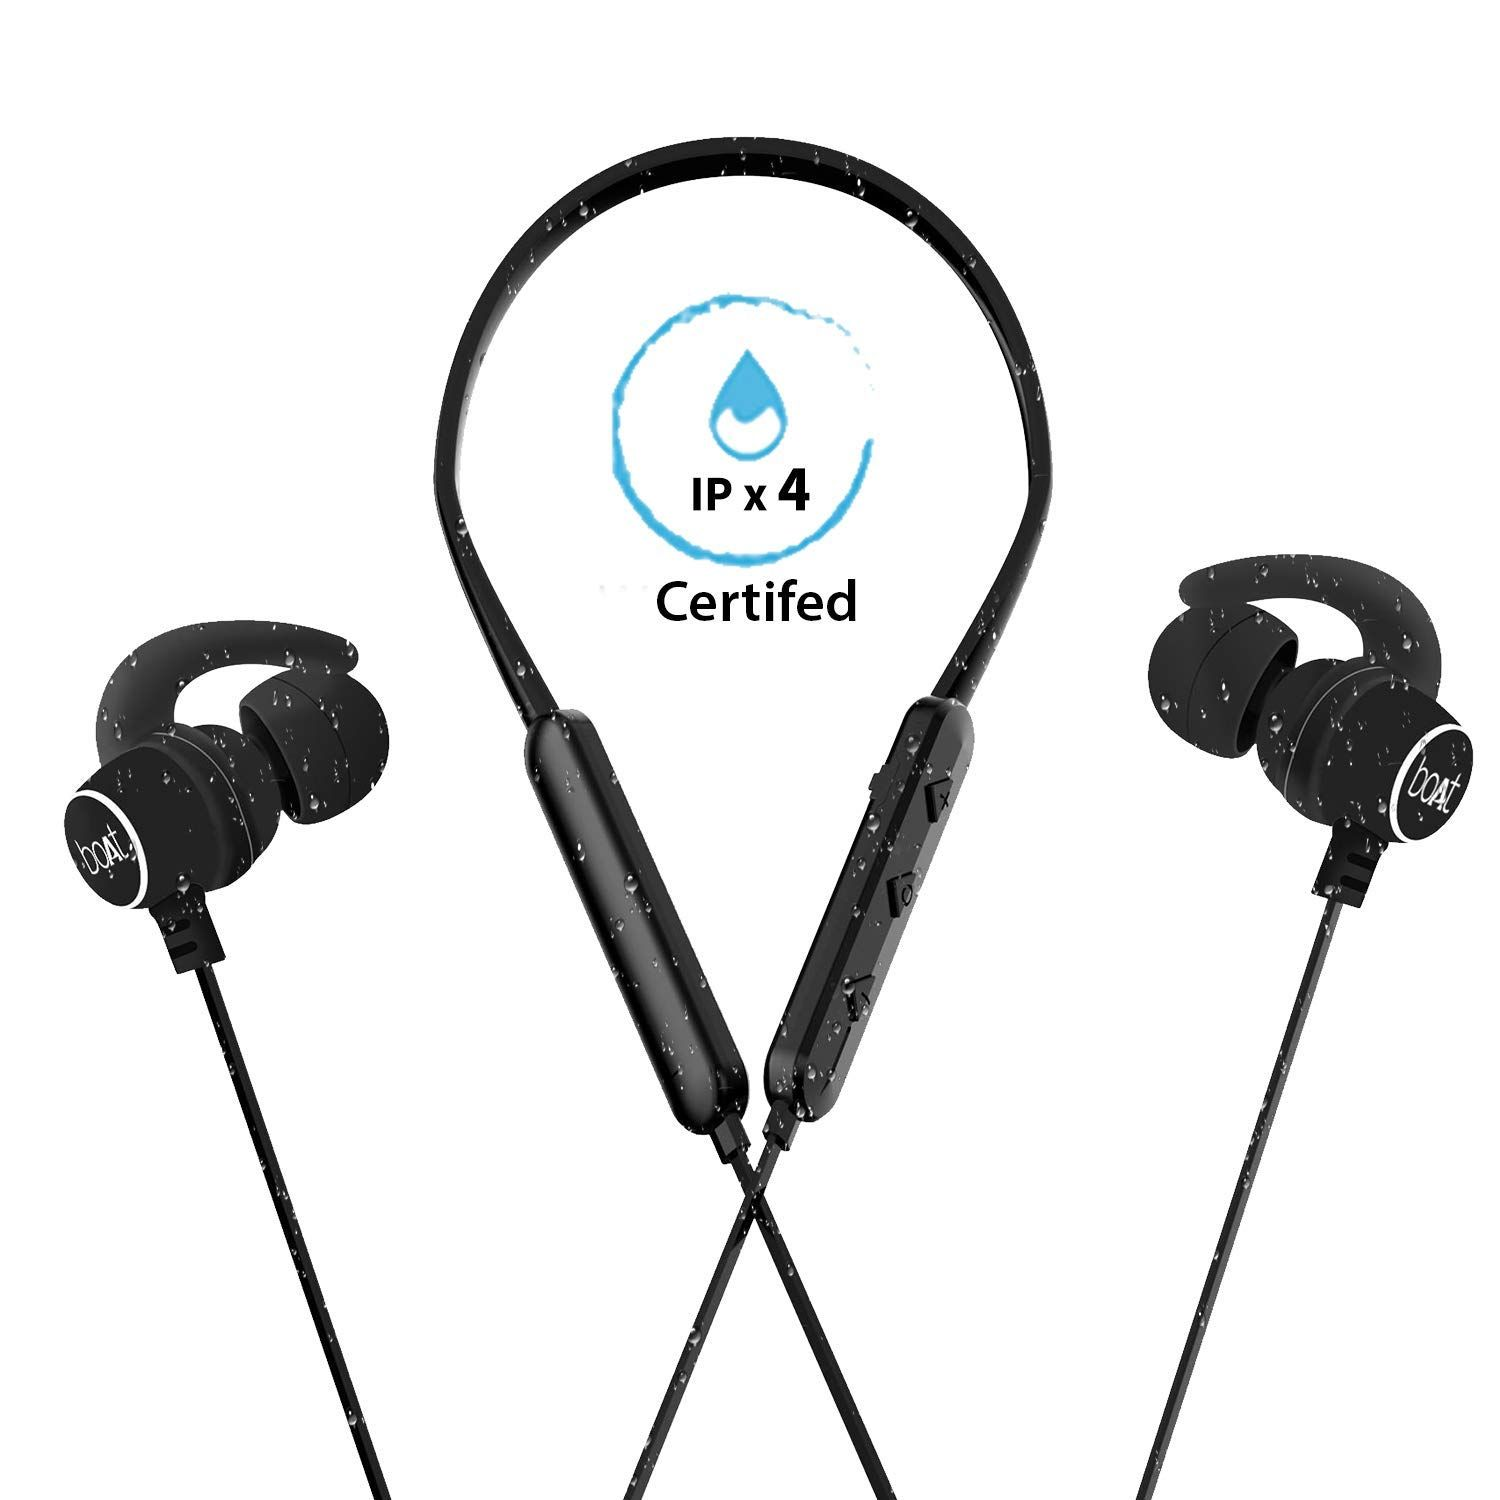 966b6450795eed boAt Rockerz 255 Sports Bluetooth Wireless Earphone with Immersive Stereo  Sound and Hands Free Mic (Active Black): Buy boAt Rockerz 255 Sports  Bluetooth ...